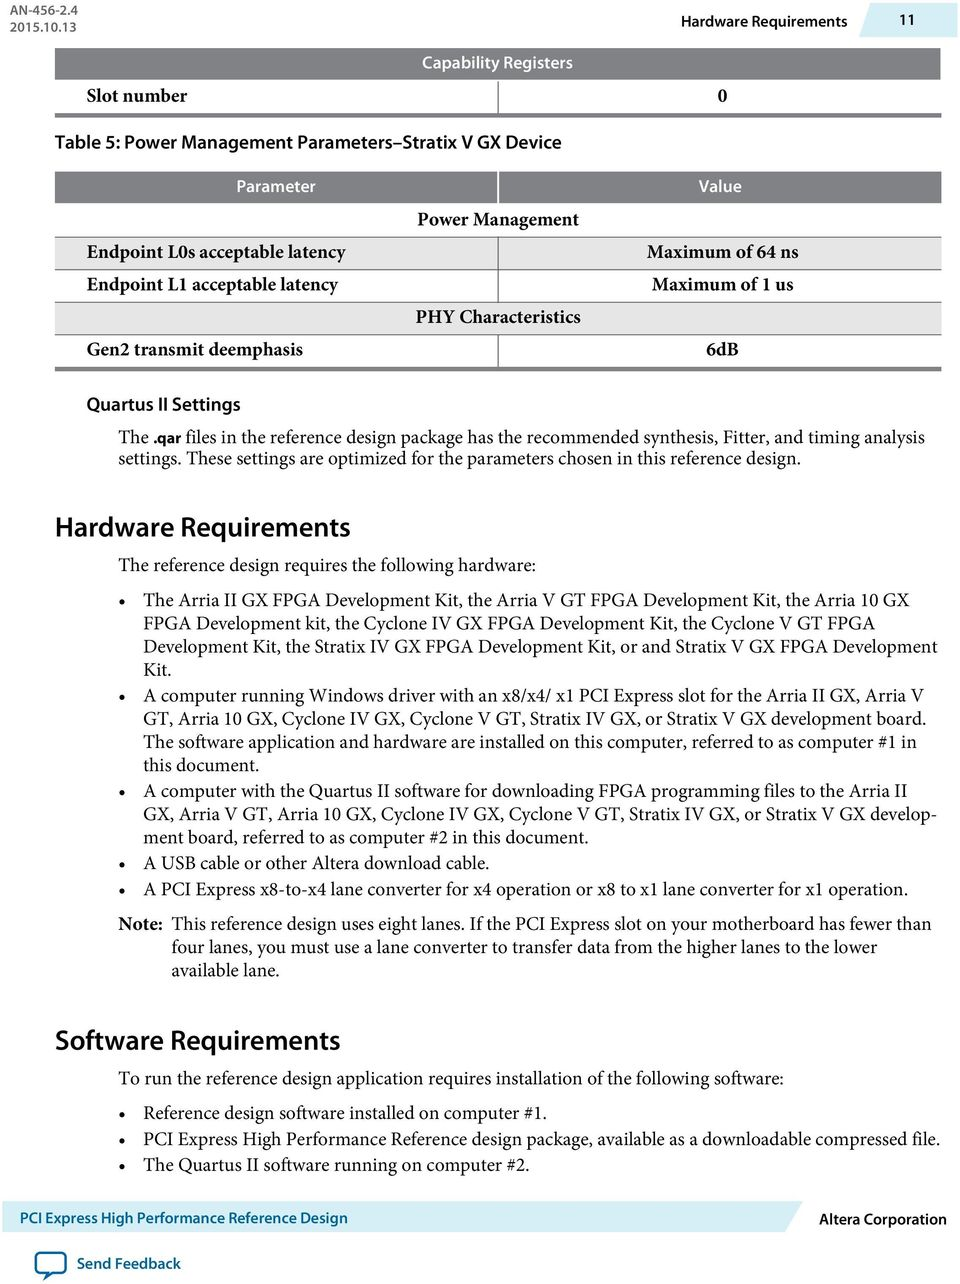 PCI Express High Performance Reference Design - PDF